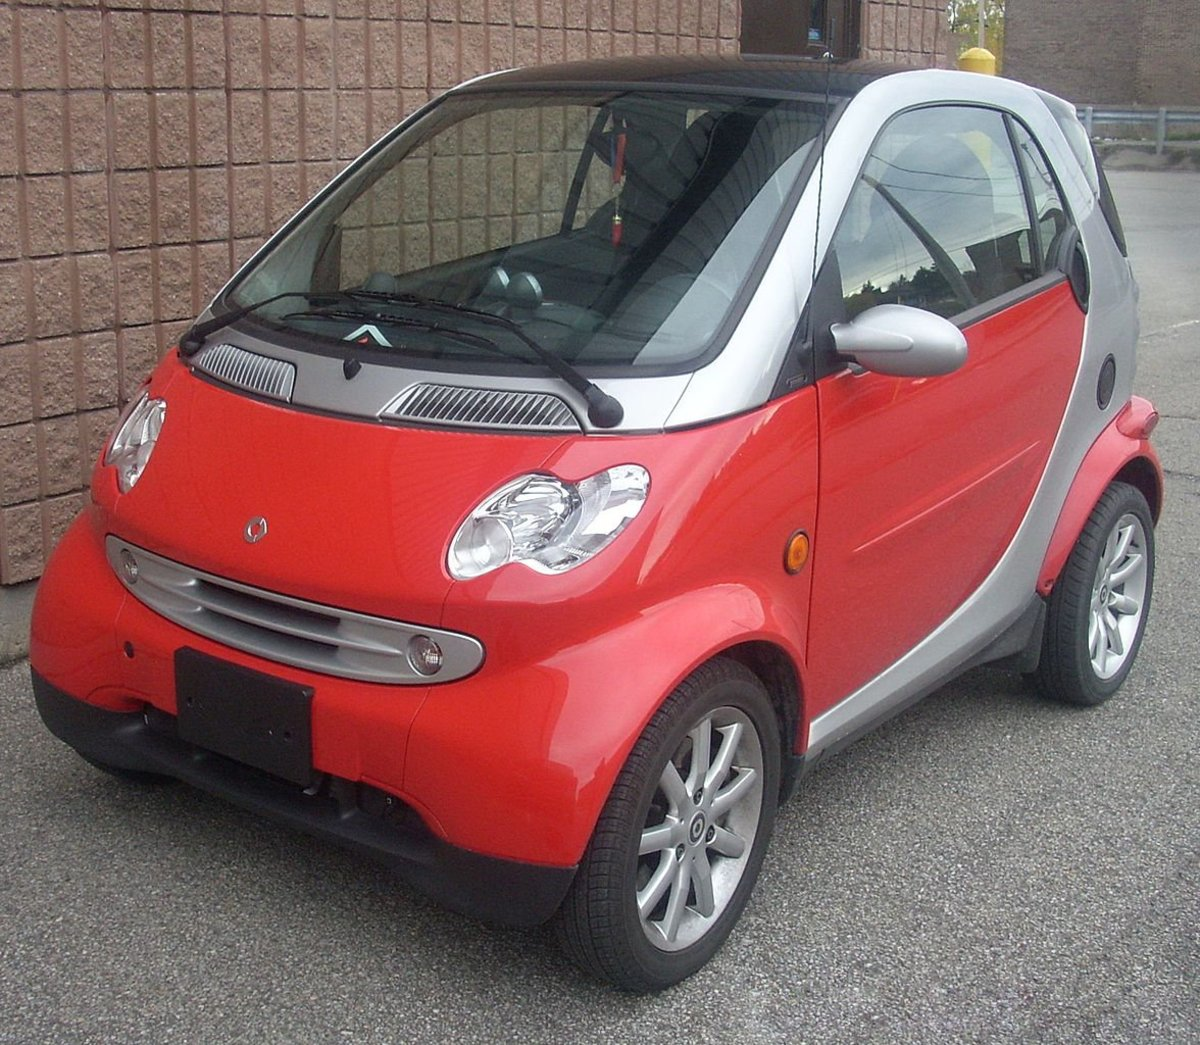 cars disadvantages smart fortwo advantages nairaland vehicle passenger likes